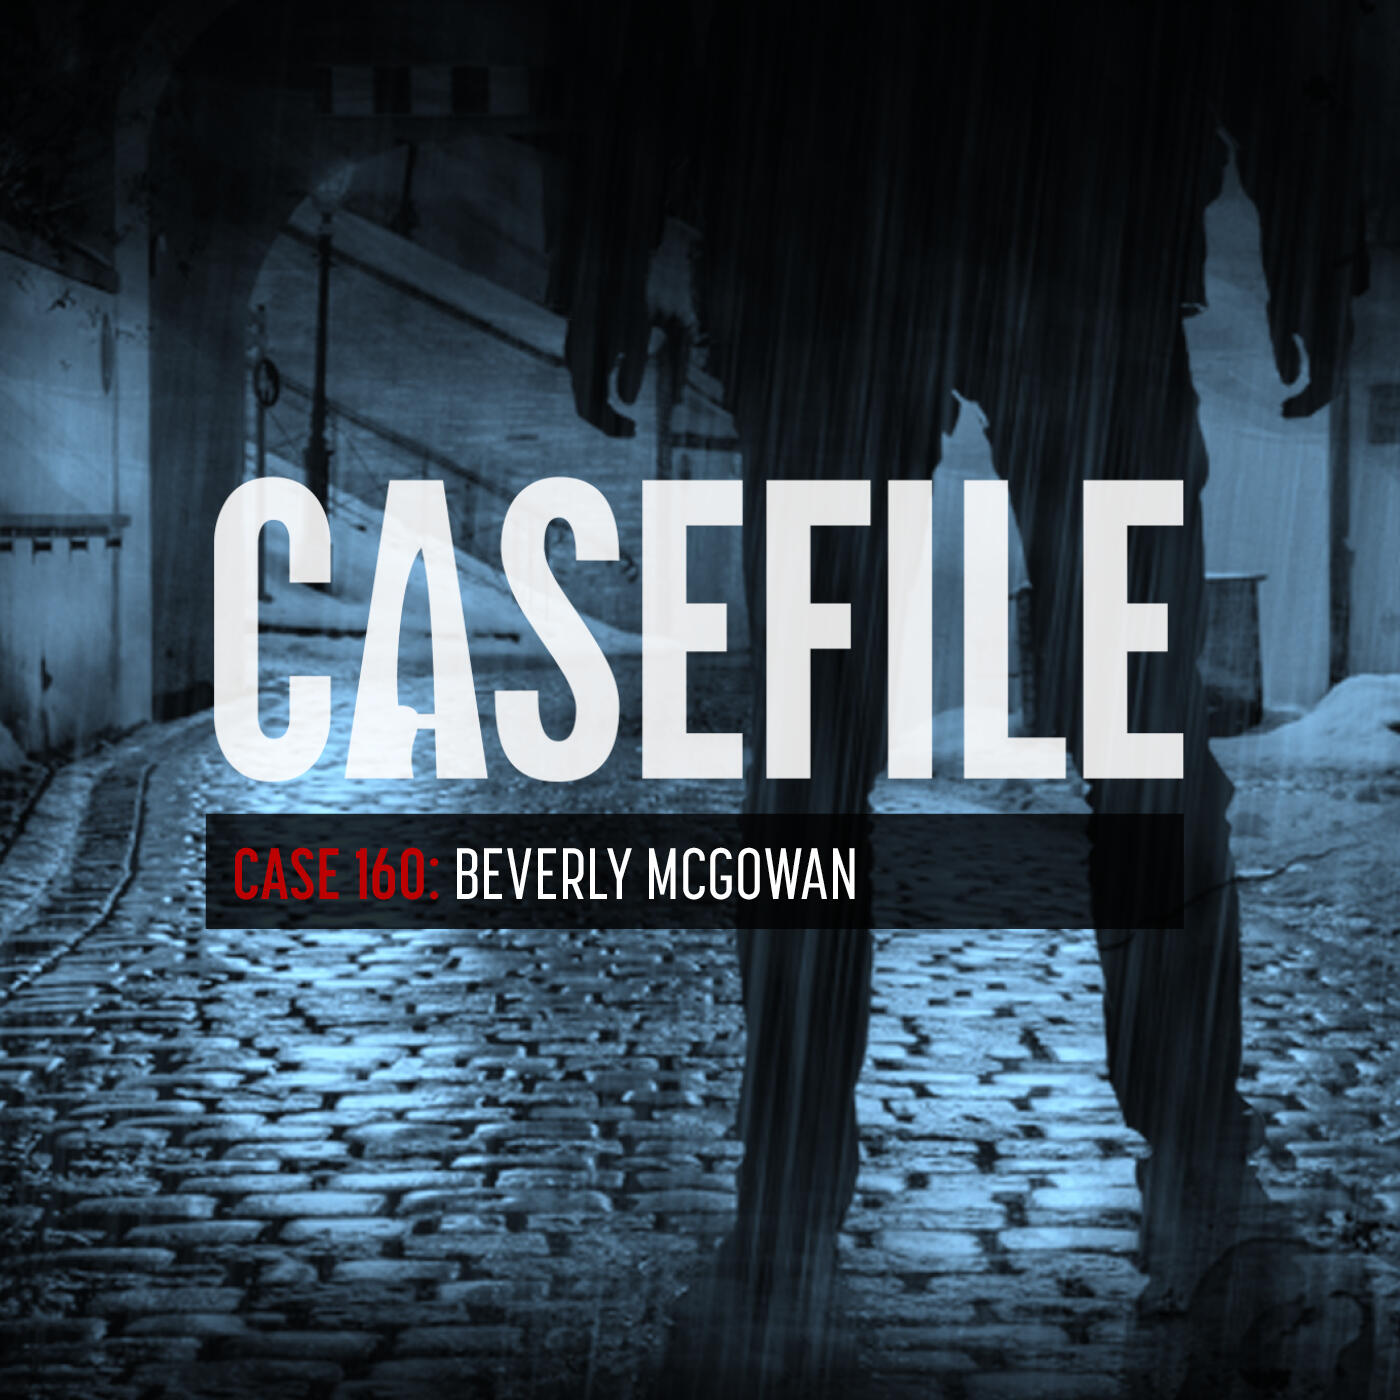 Case 160: Beverly McGowan